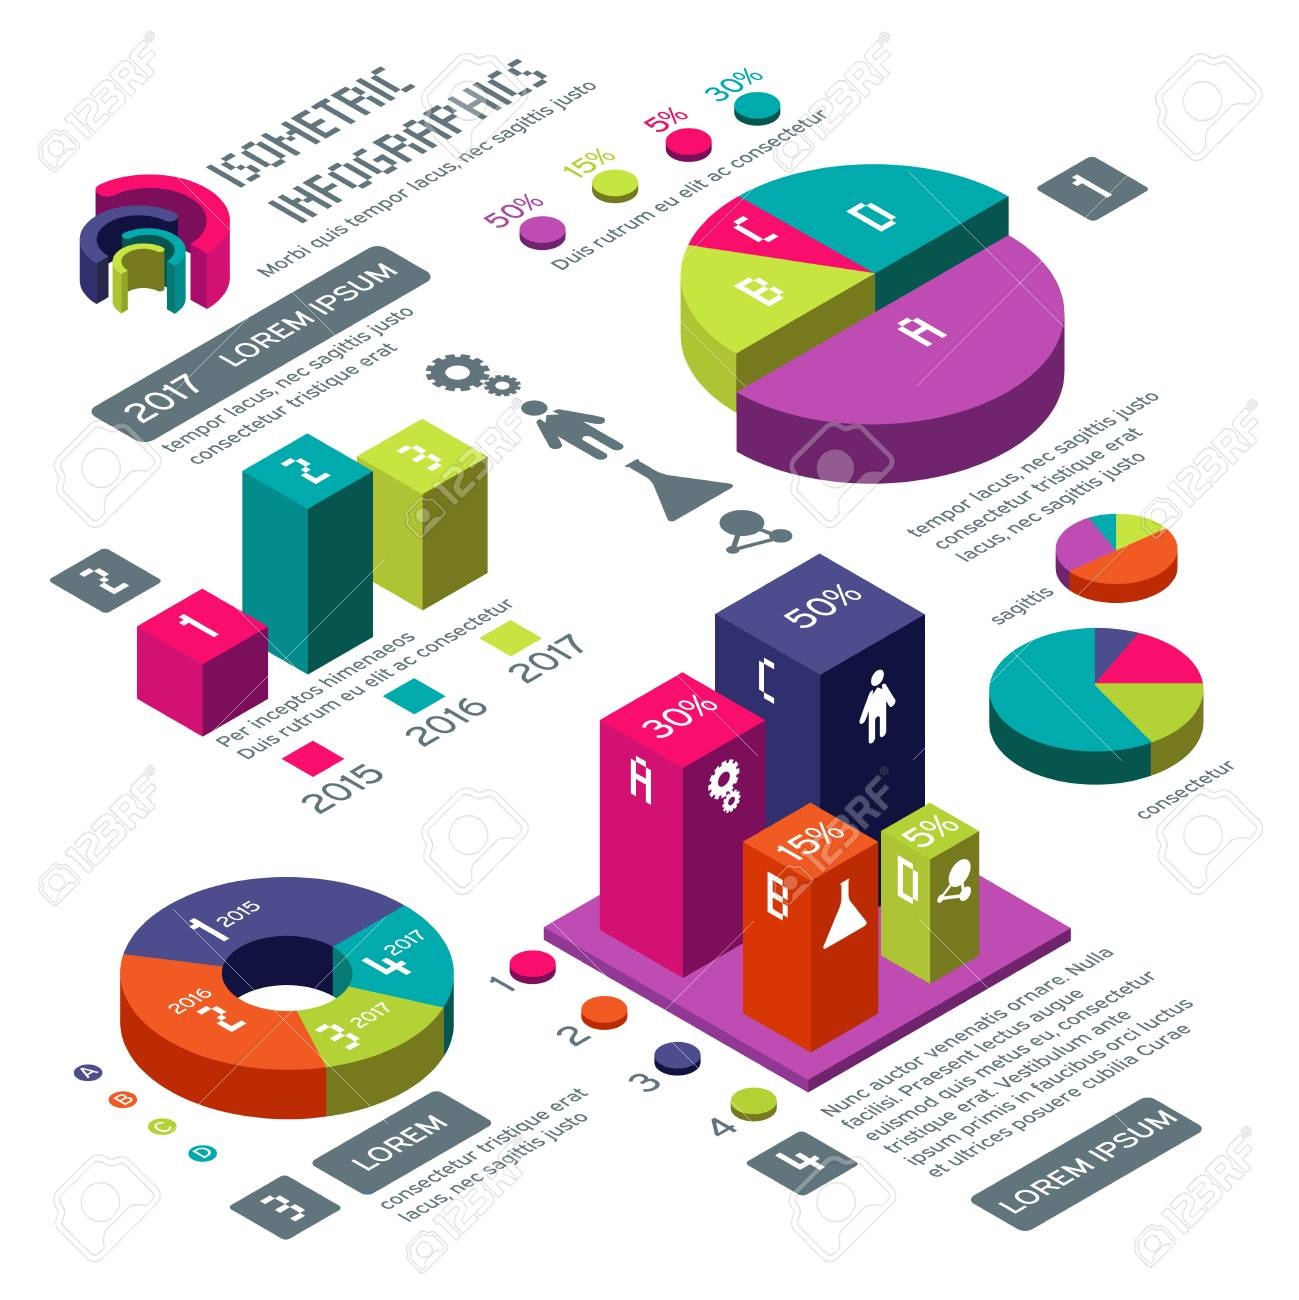 Isometric 3d Business Vector Infographic With Color Diagrams Stock Diagram The Purpose Of An Is To Illustration And Charts Colored For Information Web